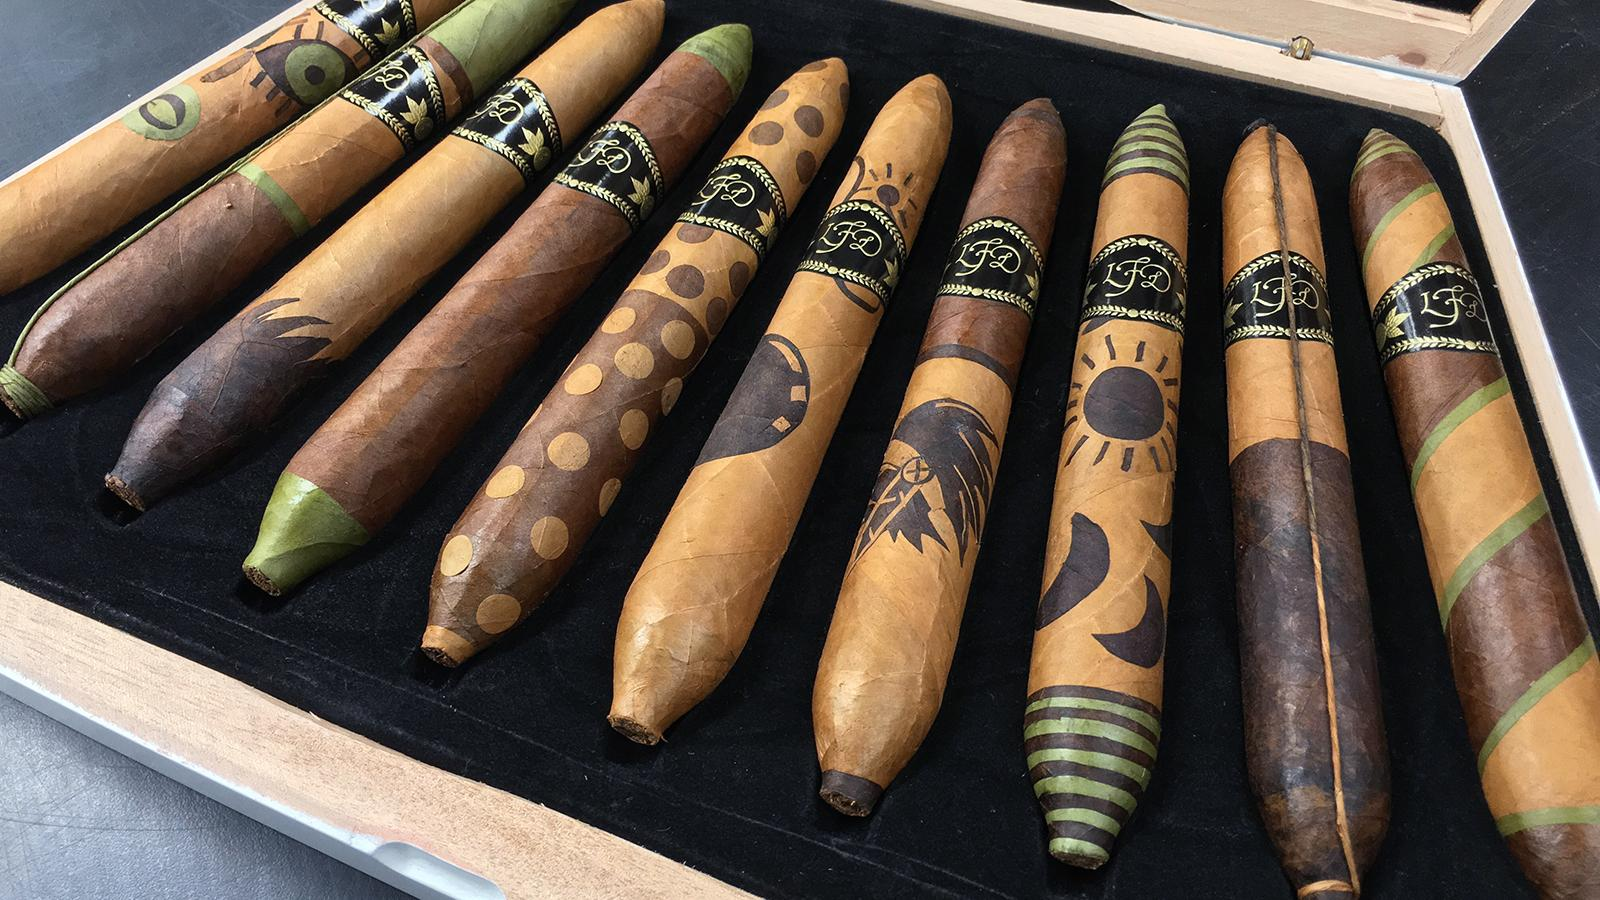 Works of Art From La Flor Dominicana